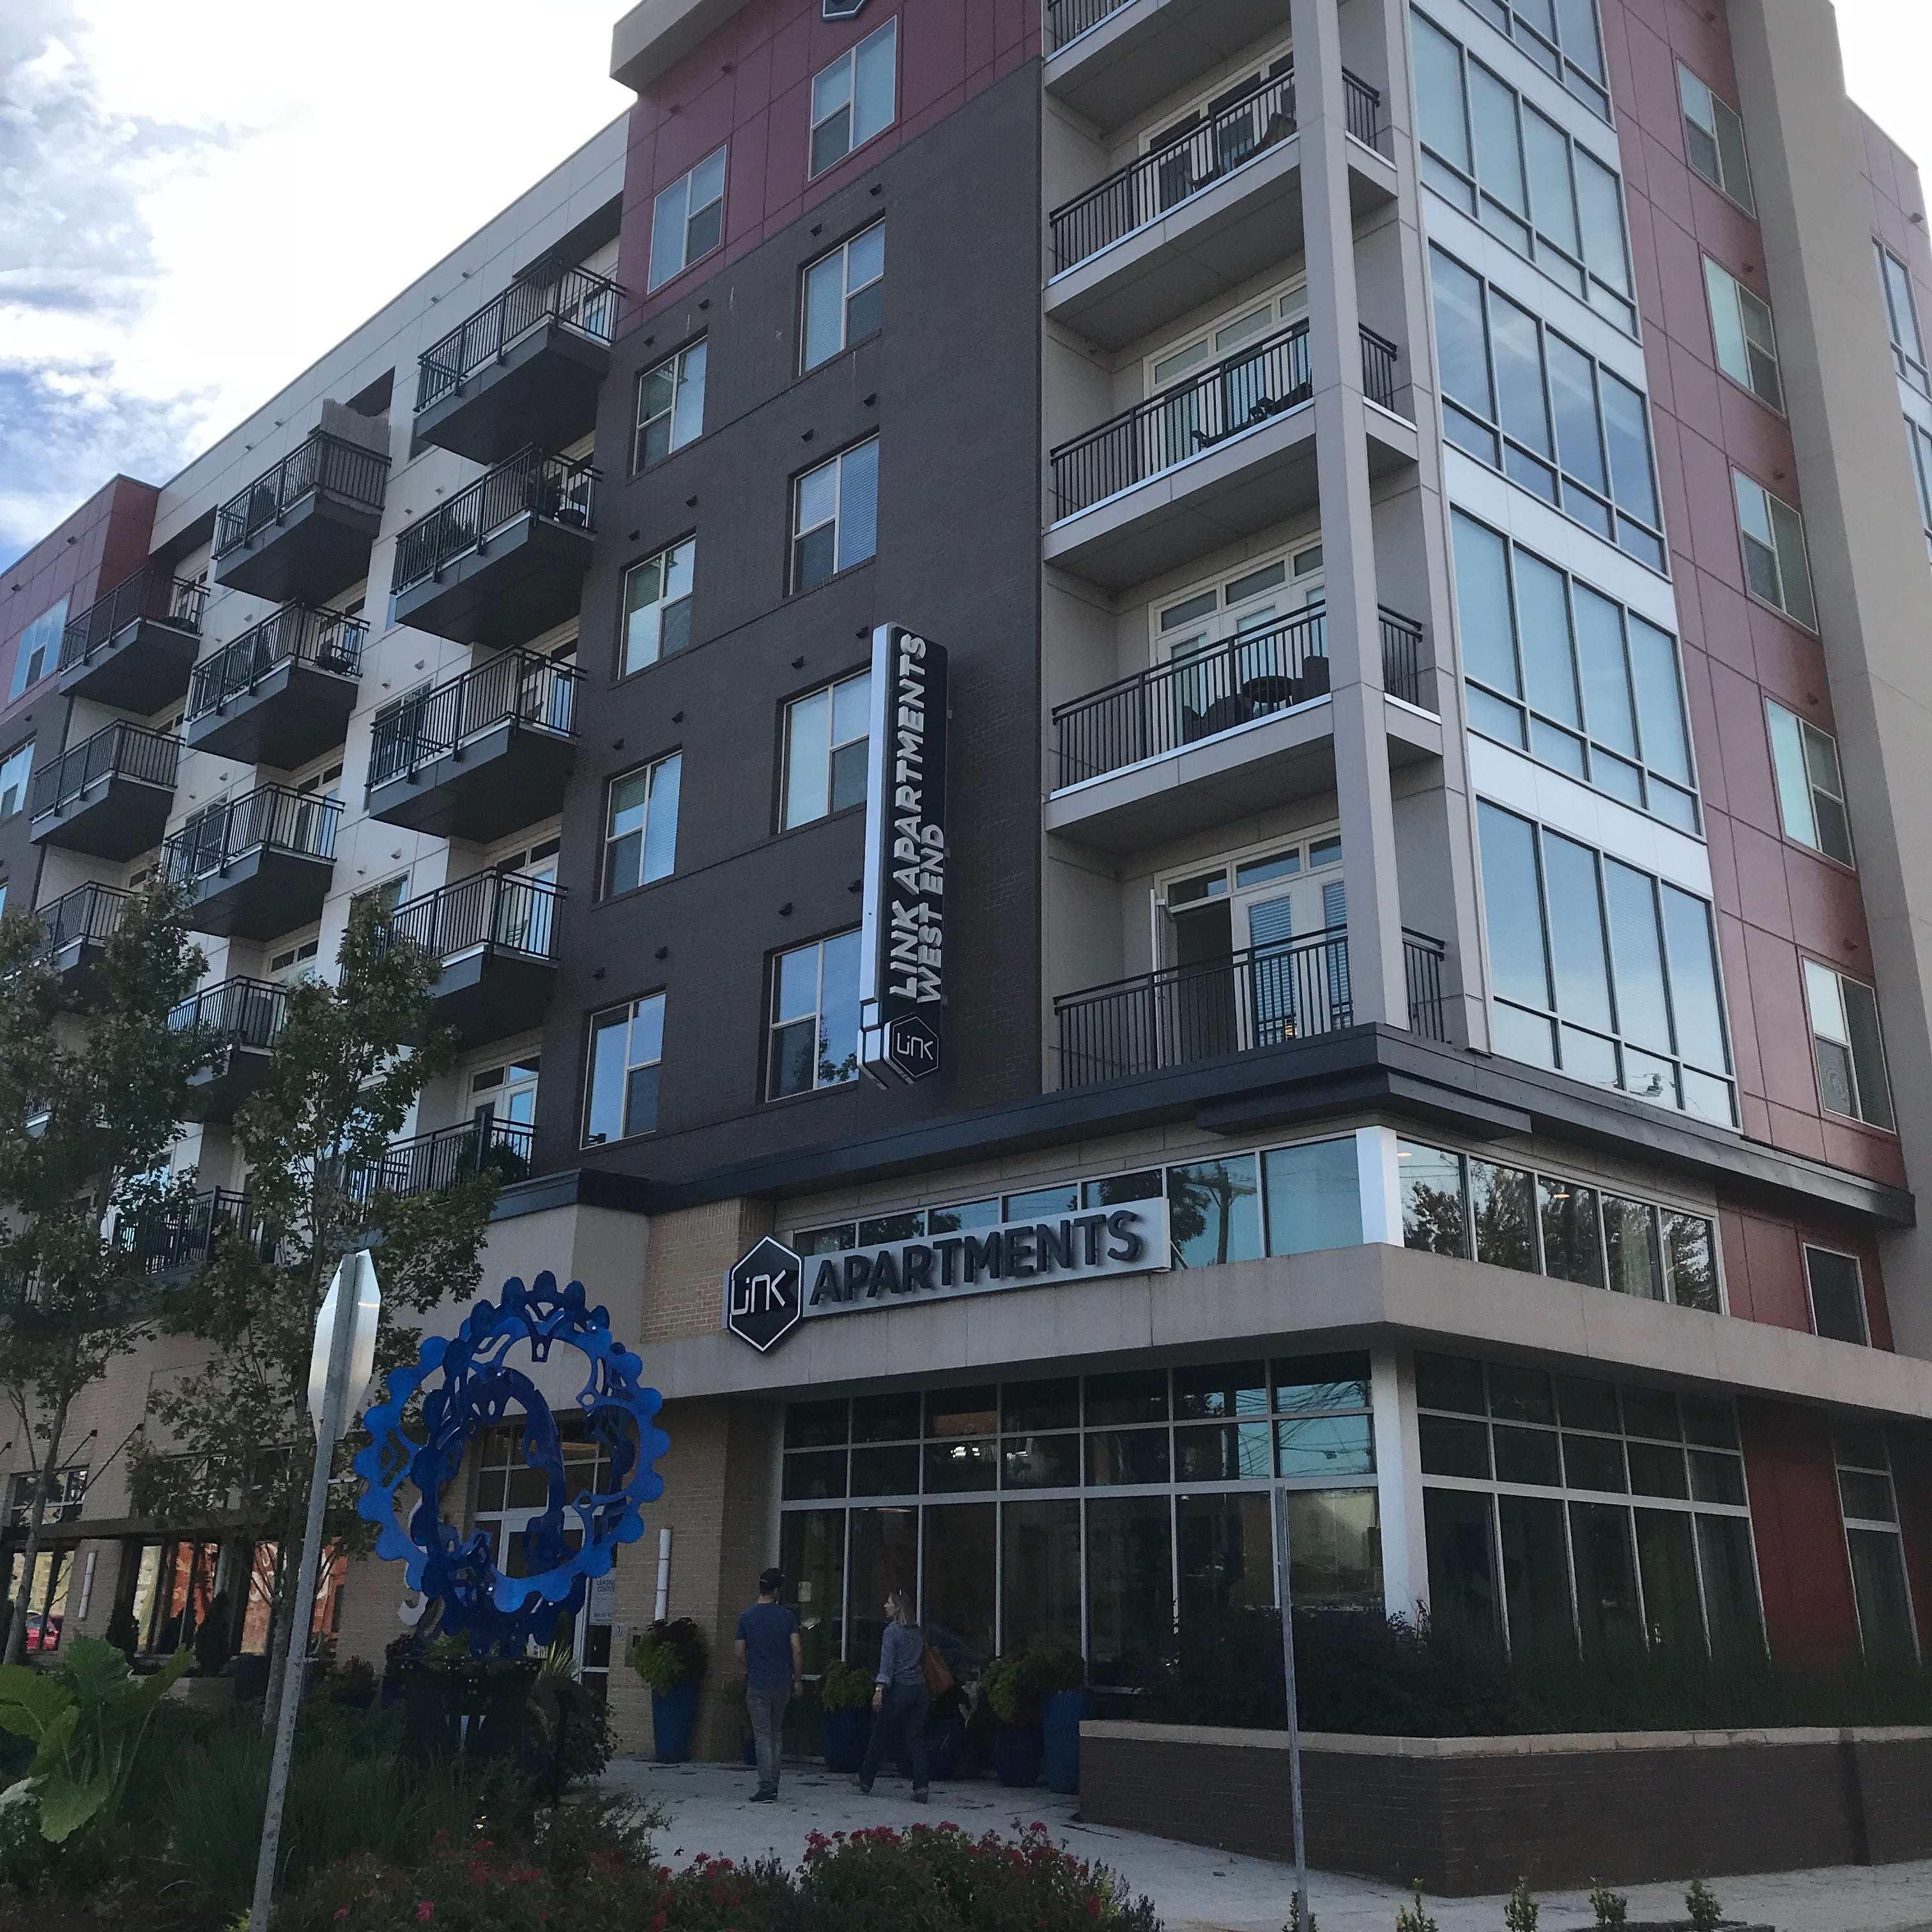 Downtown Greenville's wealth is in apartments, and there's room for even more